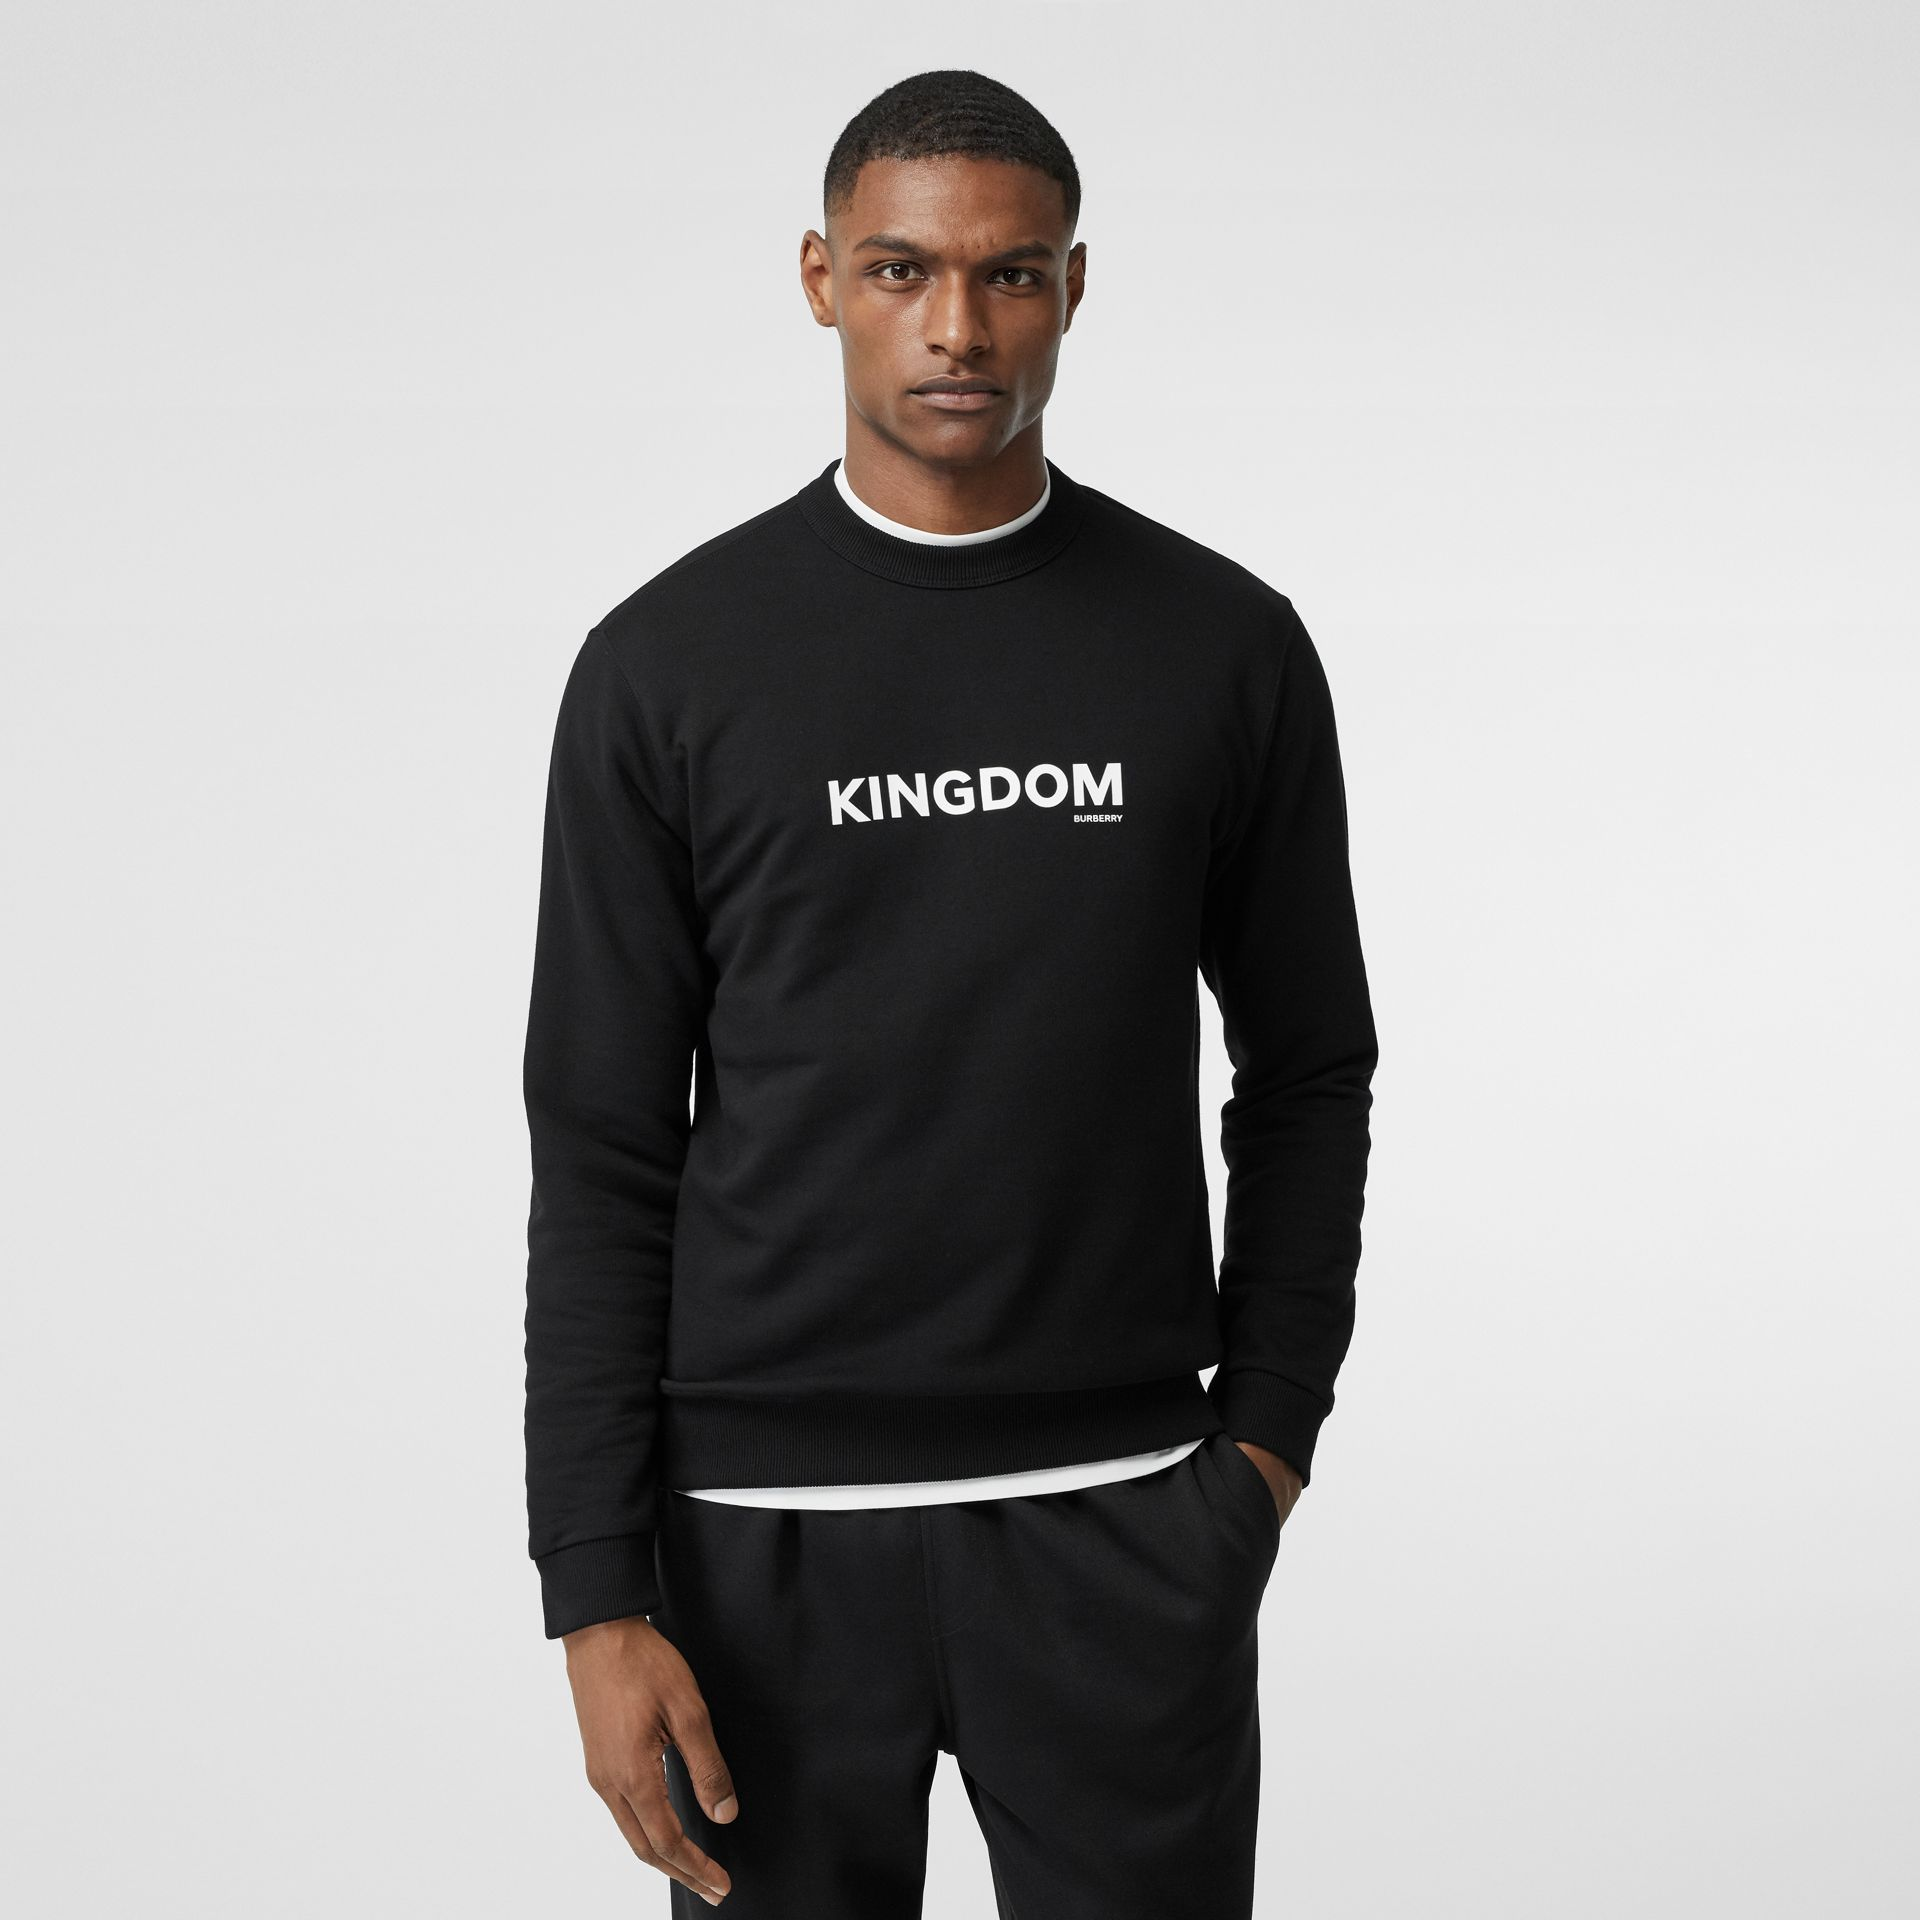 Kingdom Print Cotton Sweatshirt in Black - Men | Burberry - gallery image 4